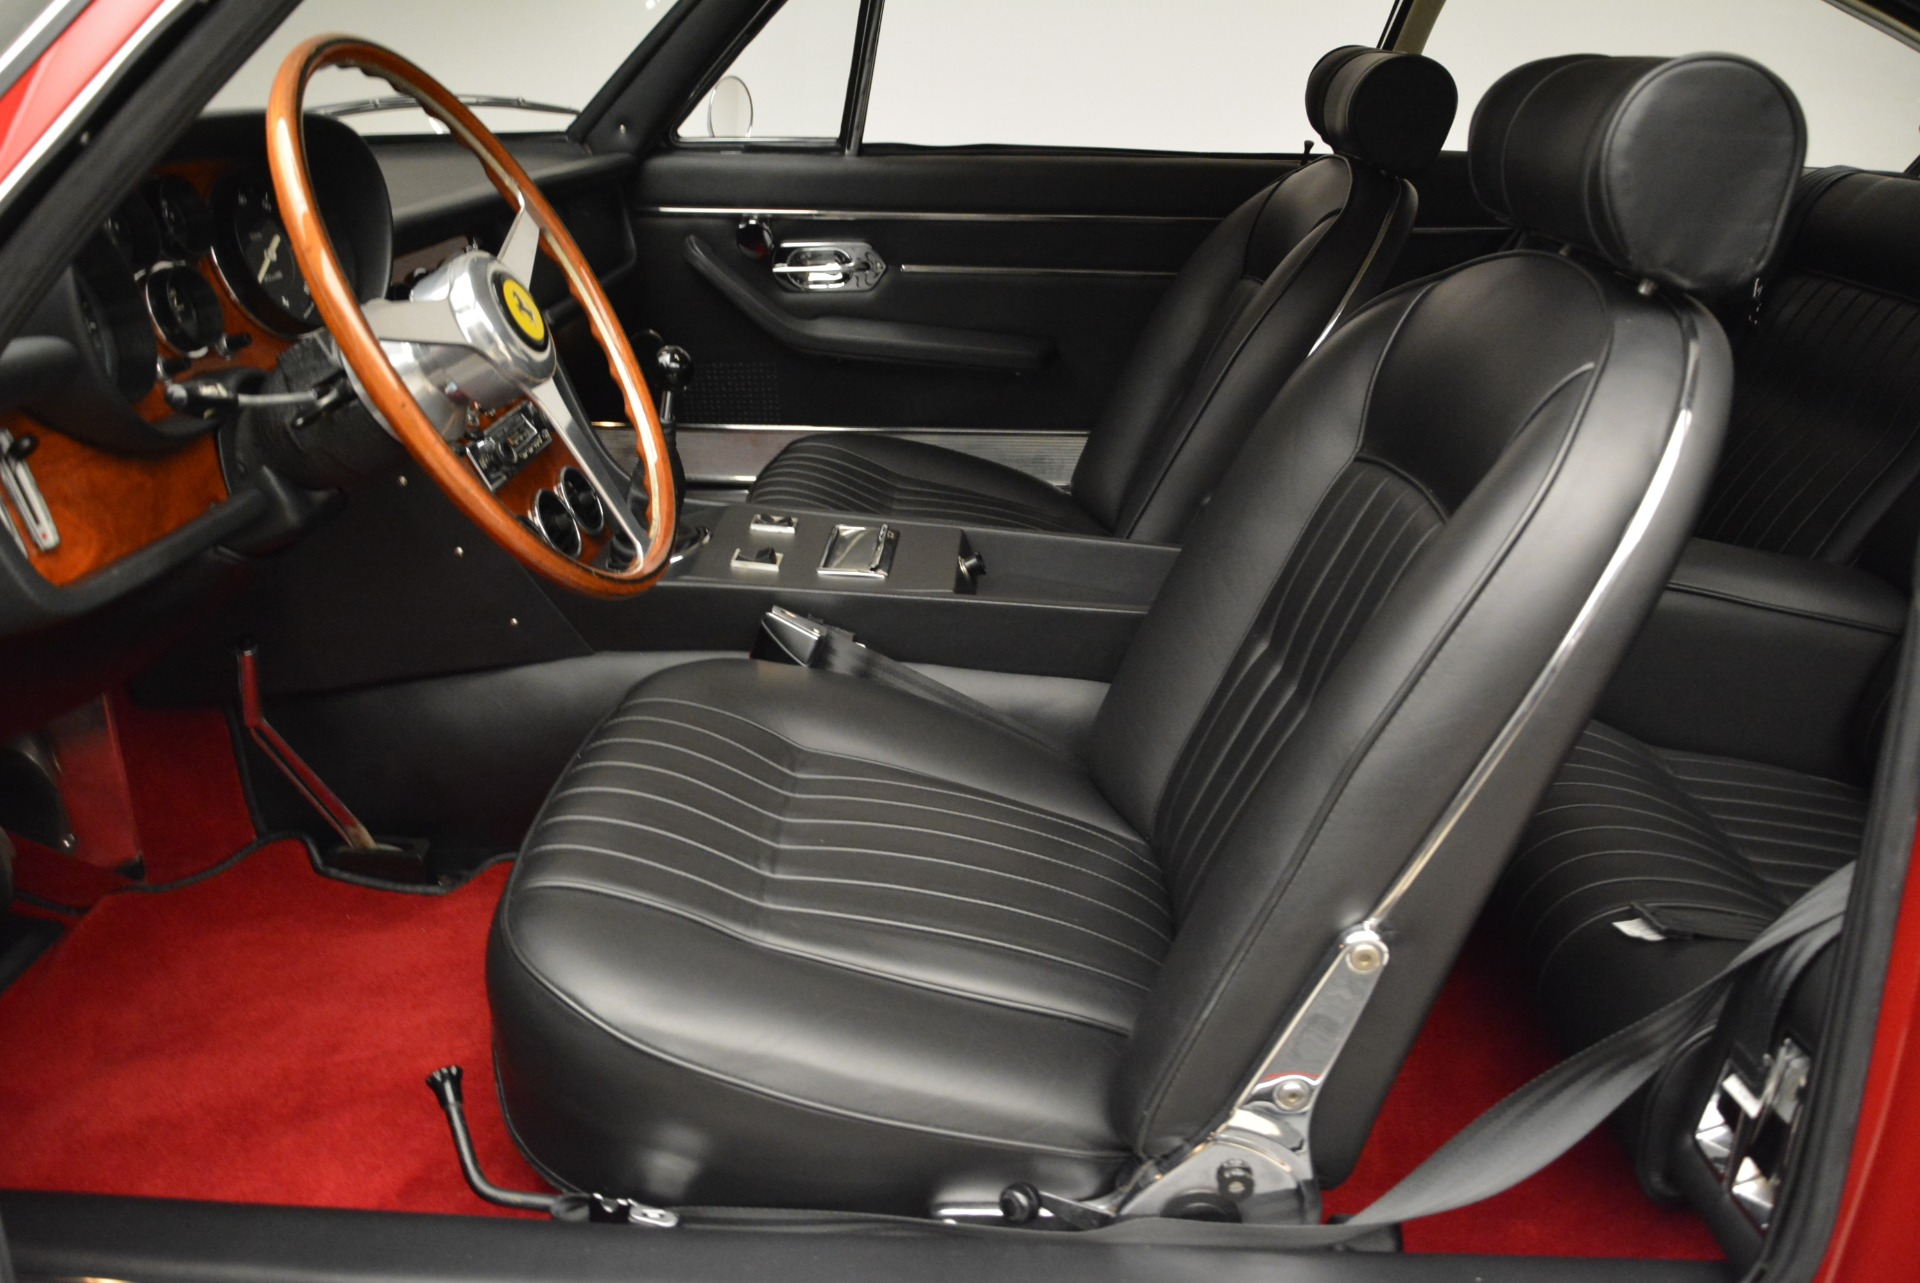 Used 1969 Ferrari 365 GT 2+2  For Sale In Greenwich, CT 1995_p14